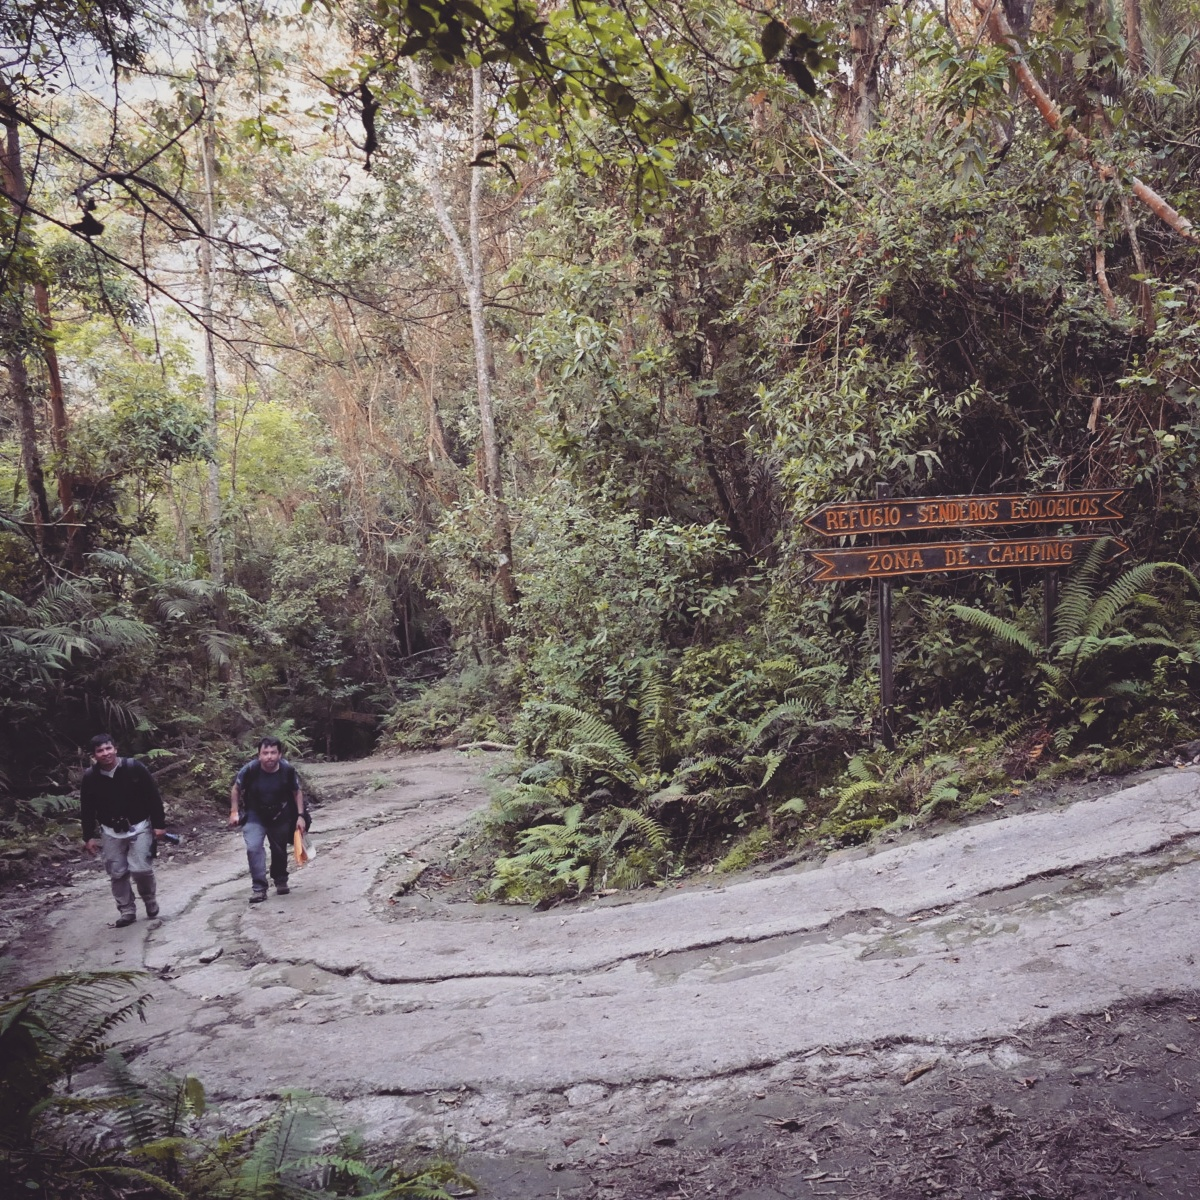 Juan Pablo and Giovanni hike up the steep track in the Chicaque Reserve. Noah Strycker